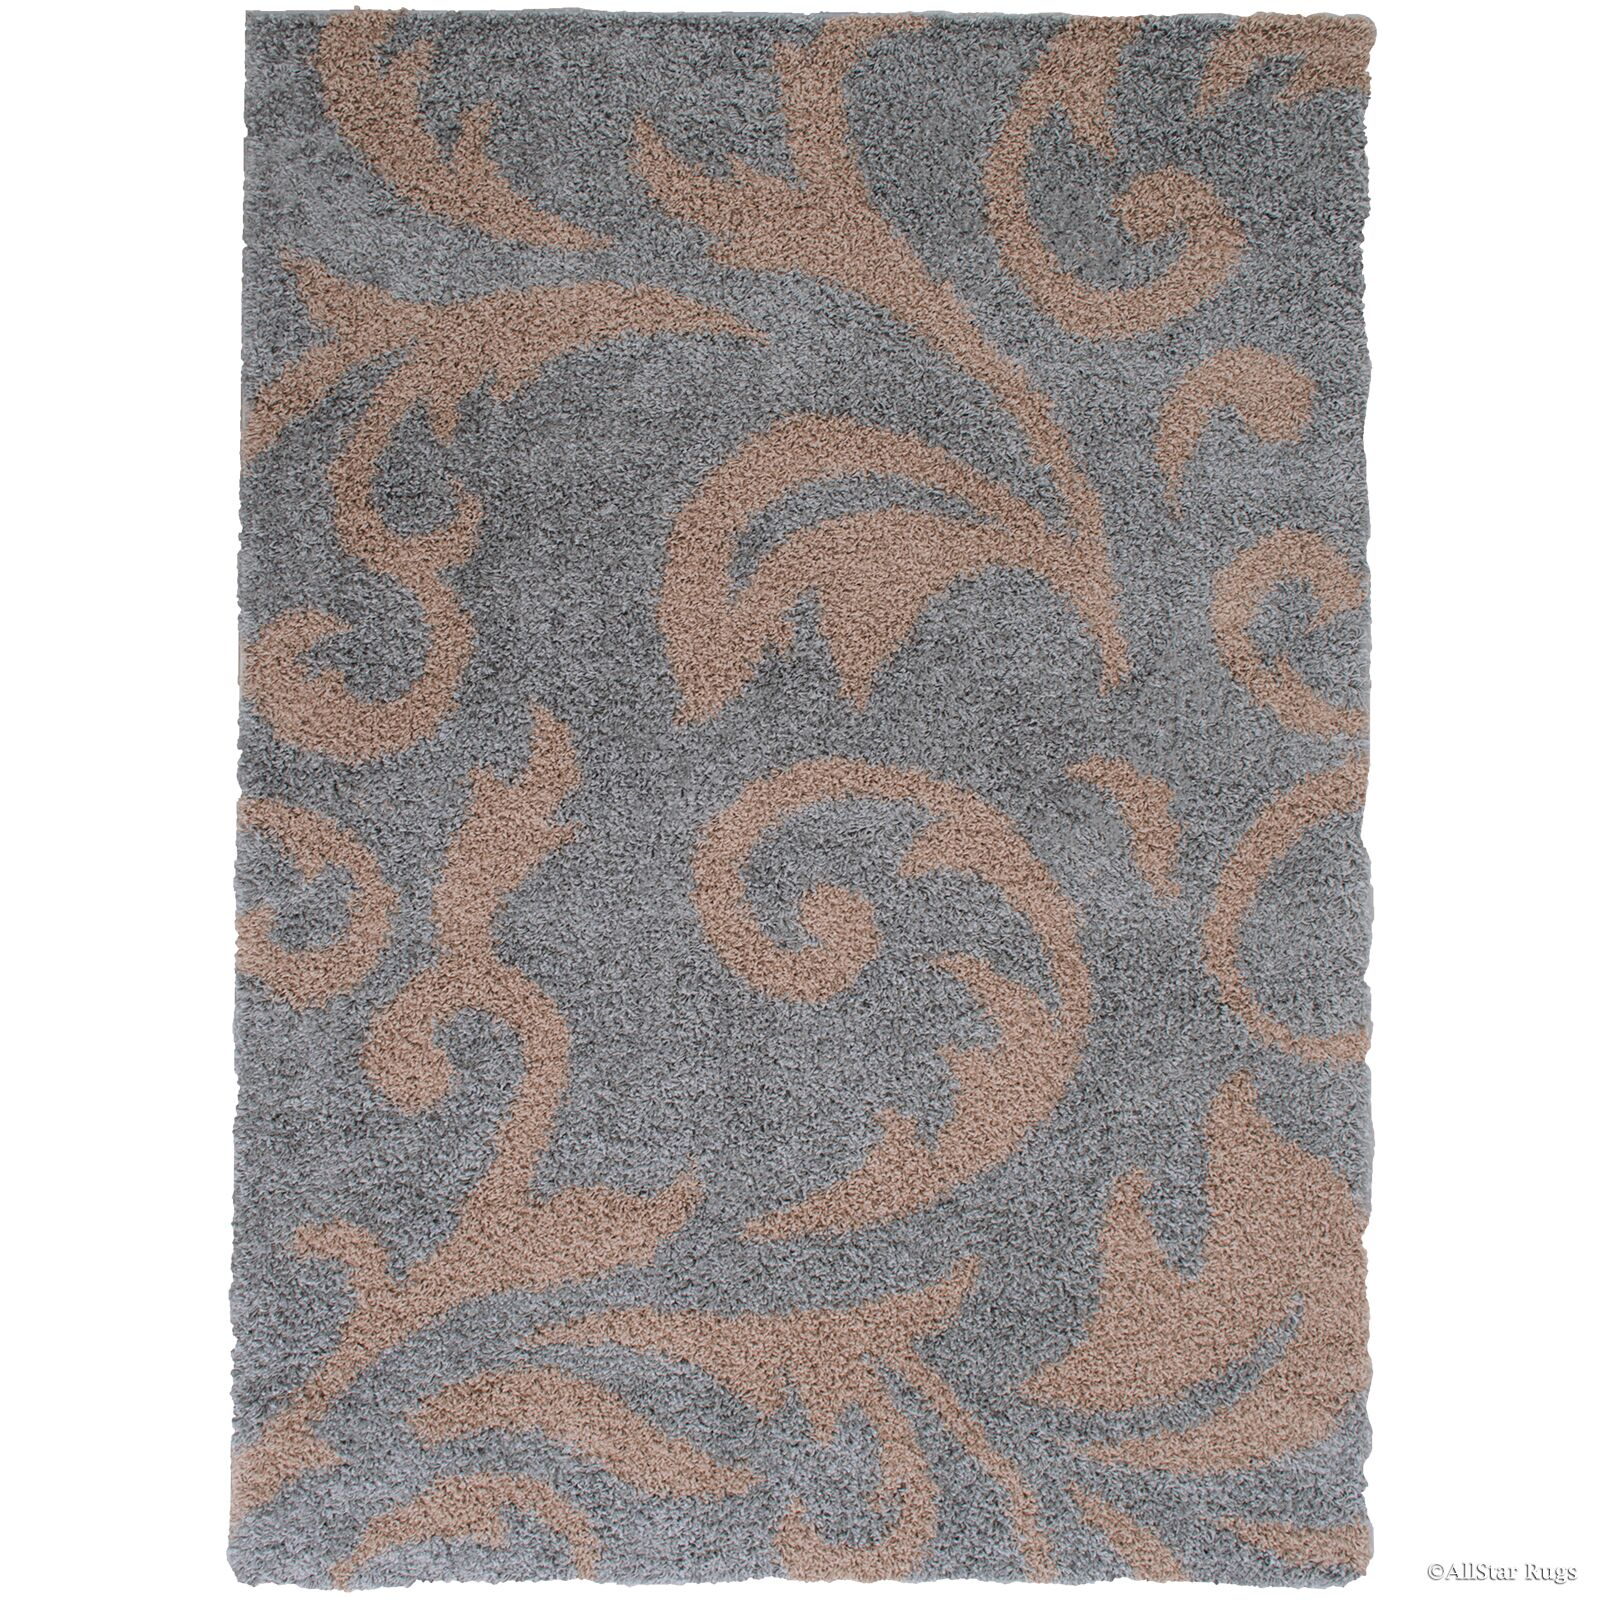 Finchley High Pile Posh Shaggy Paisley Printed Silver Area Rug Rug Size: 5' x 7'